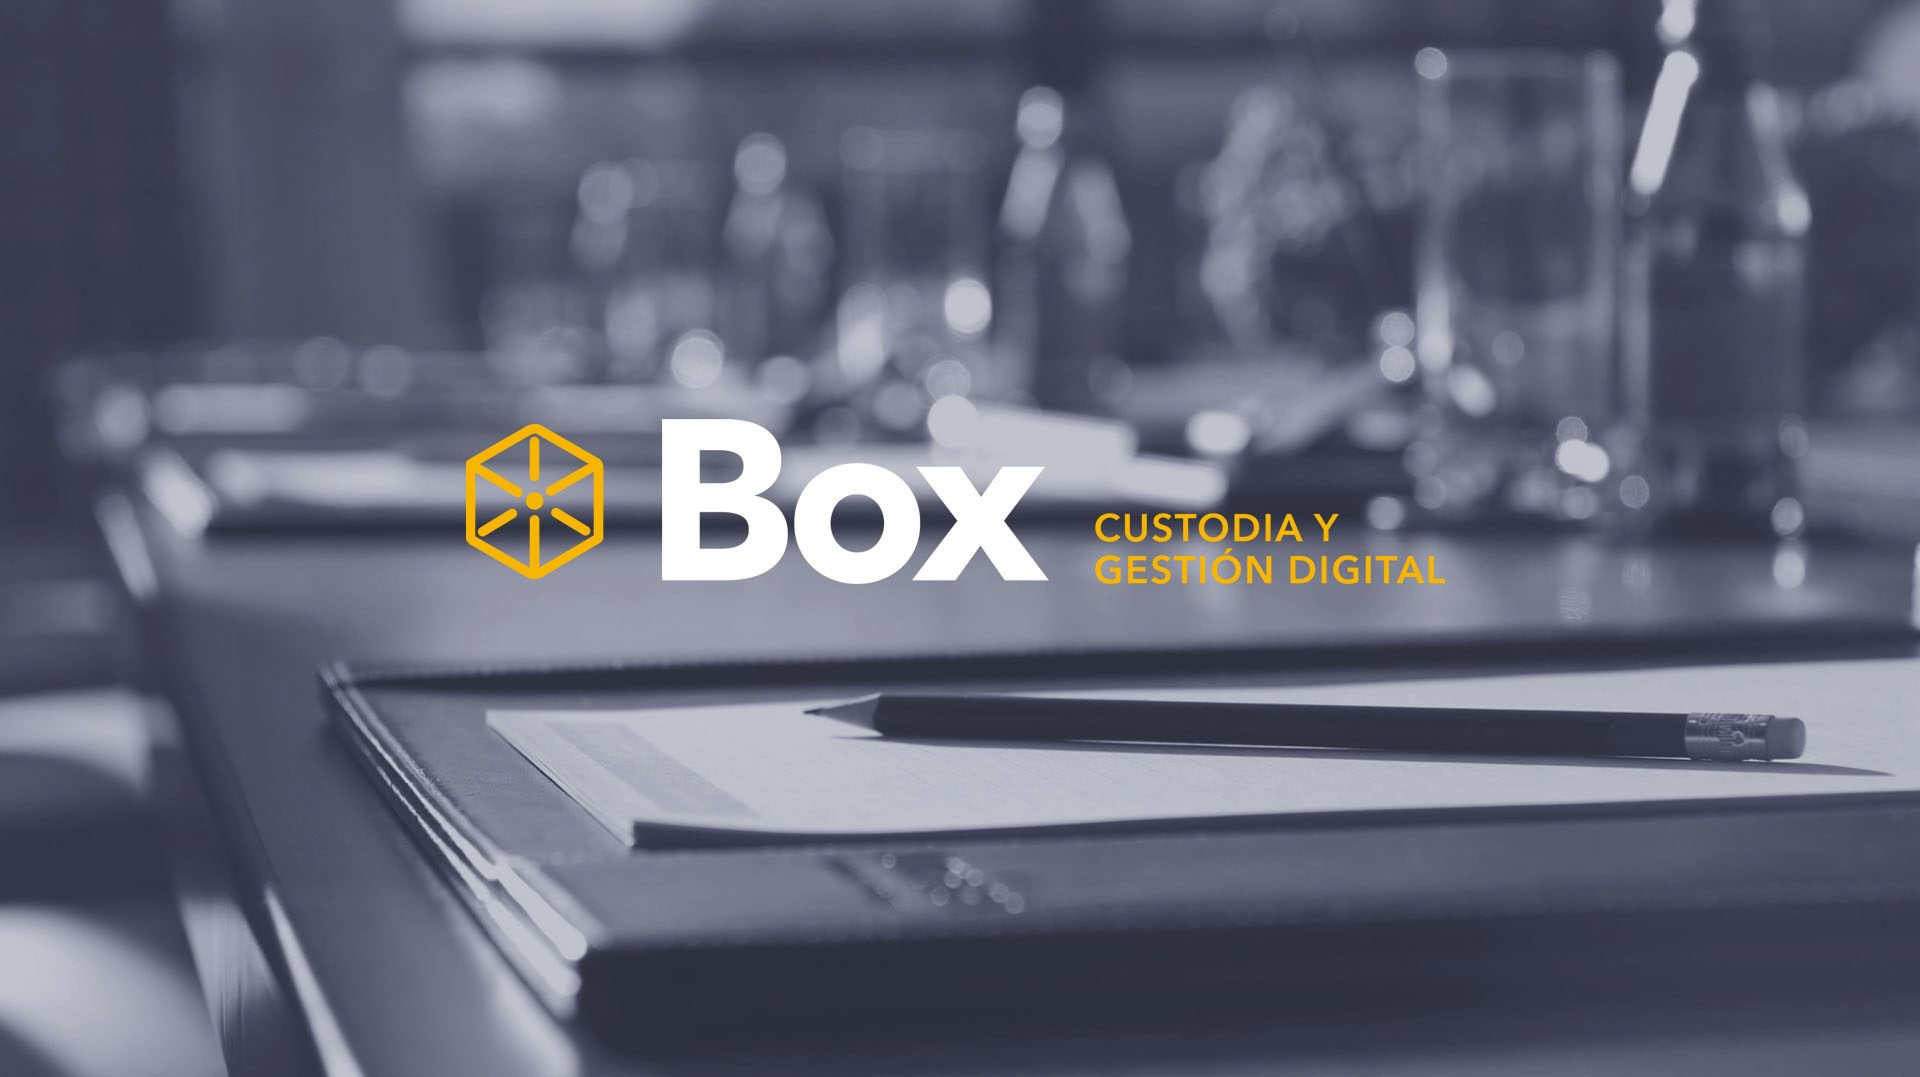 Box – Custodia y Gestión Digital